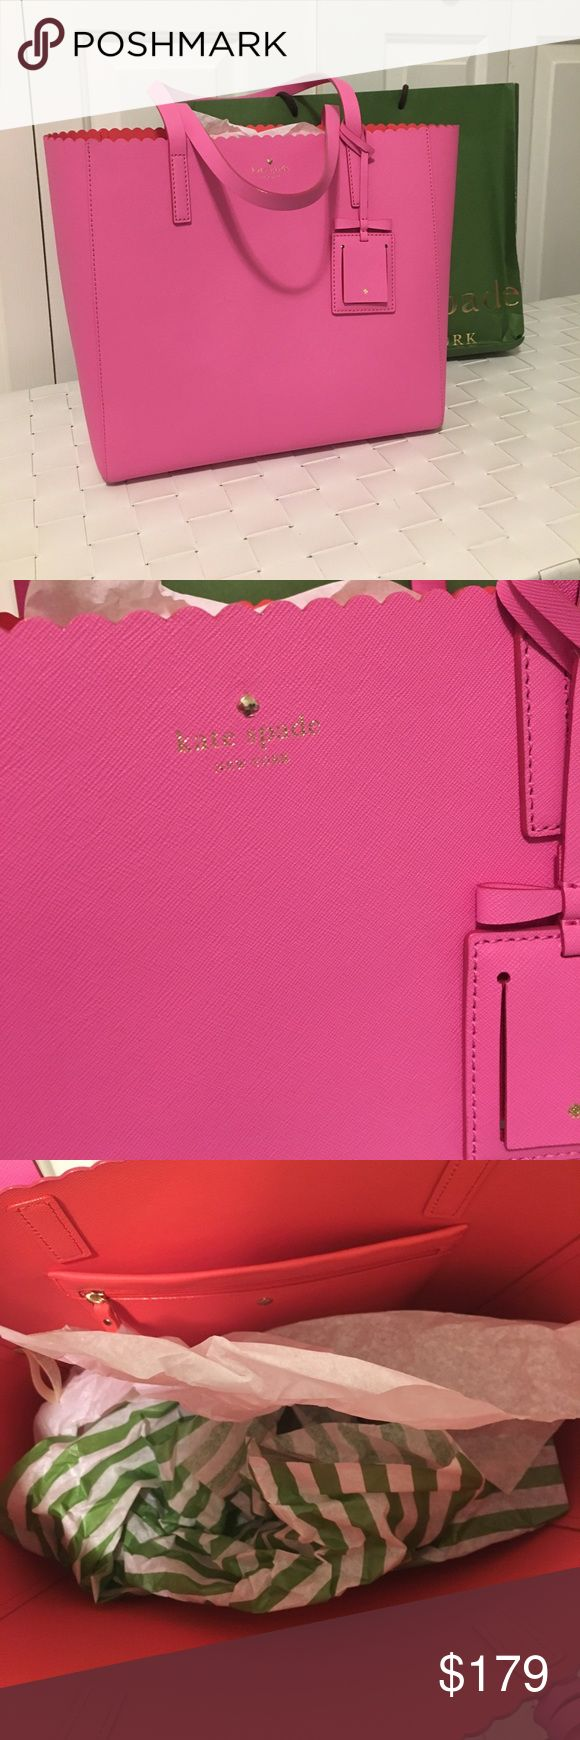 NWOT Kate spade cape drive hallie Tote Bag Brand new without tags, never used, matches the wallet I have for sale, pink exterior, red interior, comes with gift bag(which in fair condition from months of storage), no flaws on the actual bag authentic kate spade Bags Totes